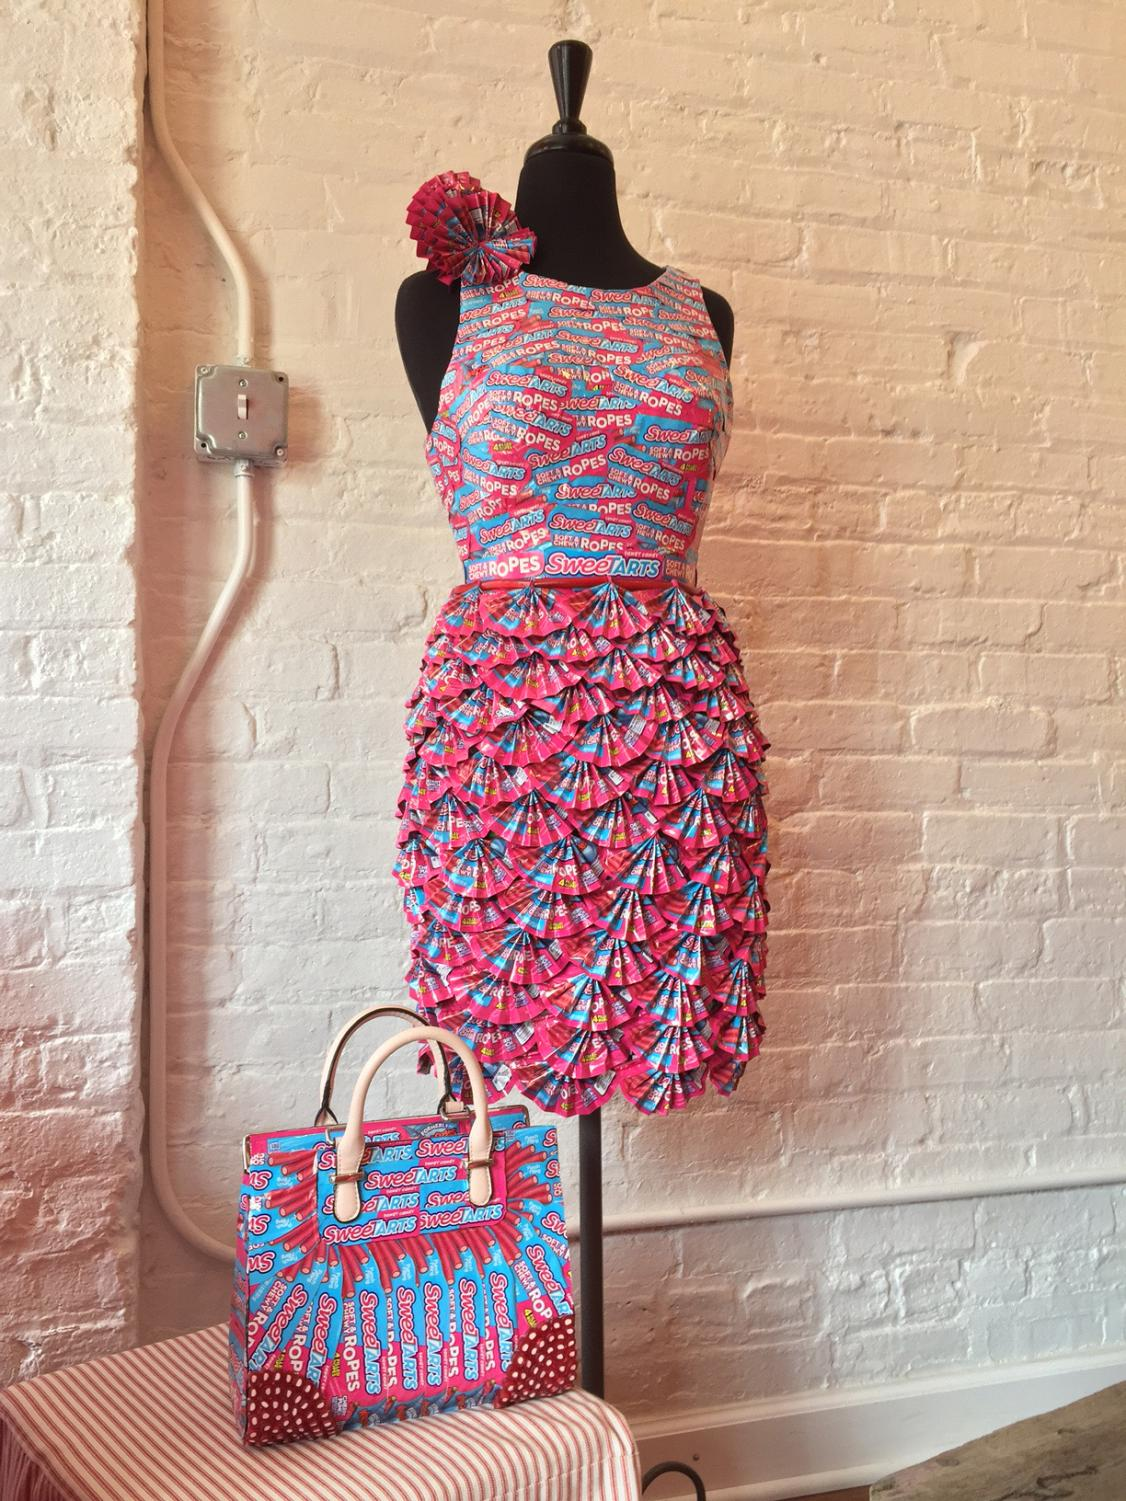 A dress made entirely of SweeTARTSwrappers is on display at the Candyality museum,835 N. Michigan Ave., 7th Floor.